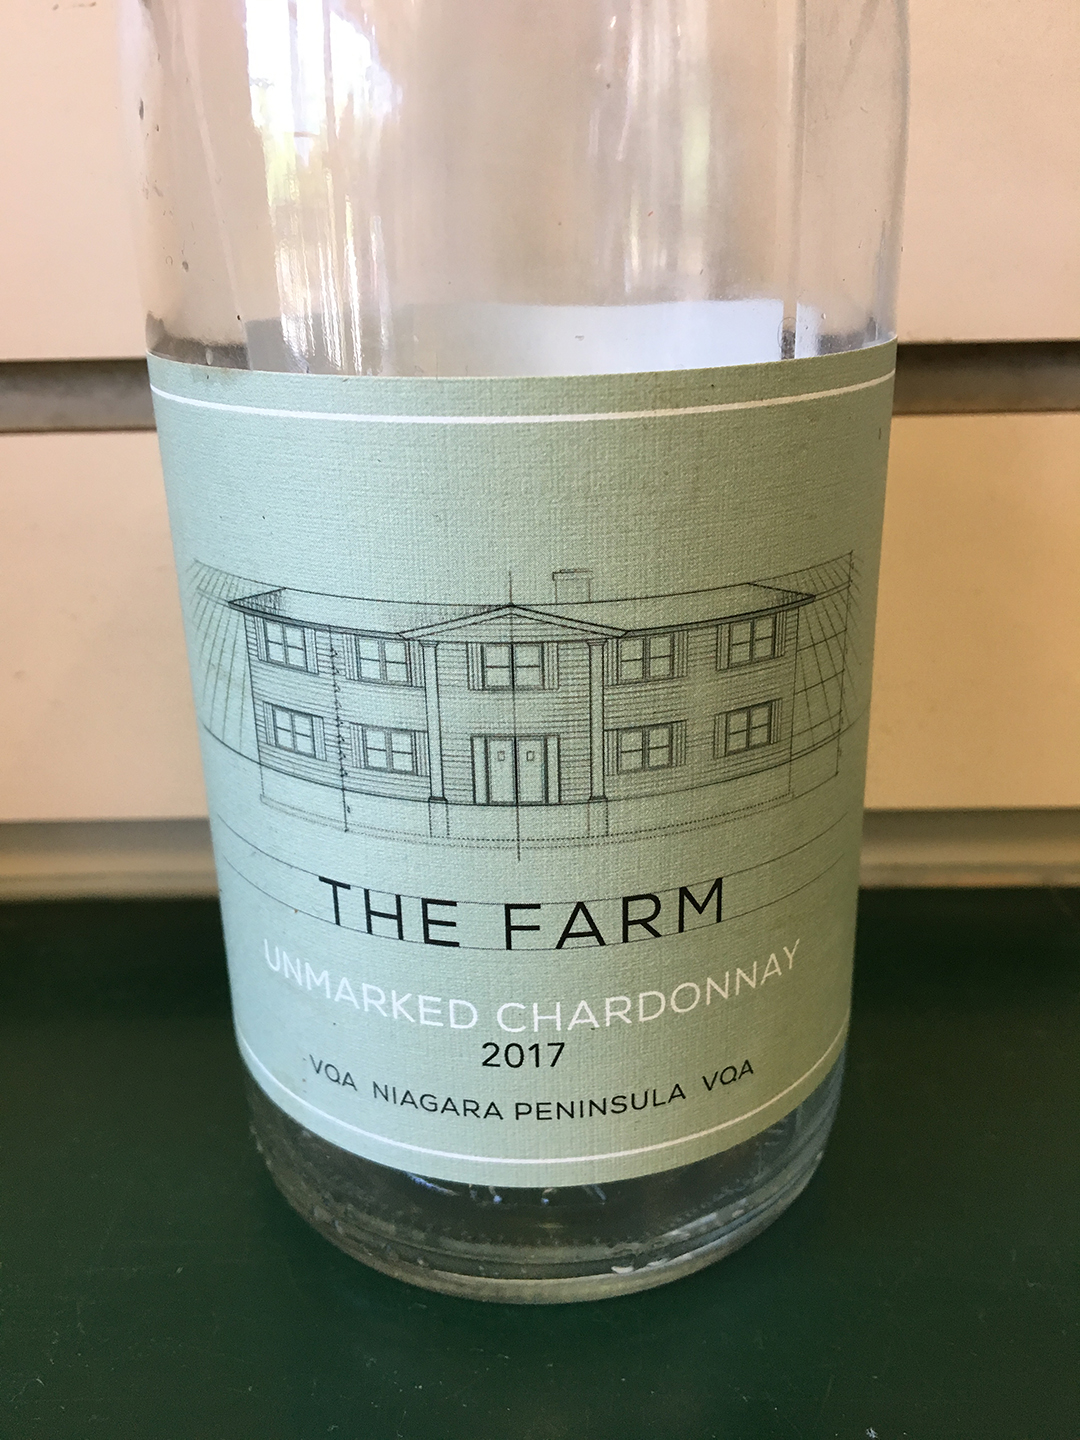 The Farm Chardonnay 2017